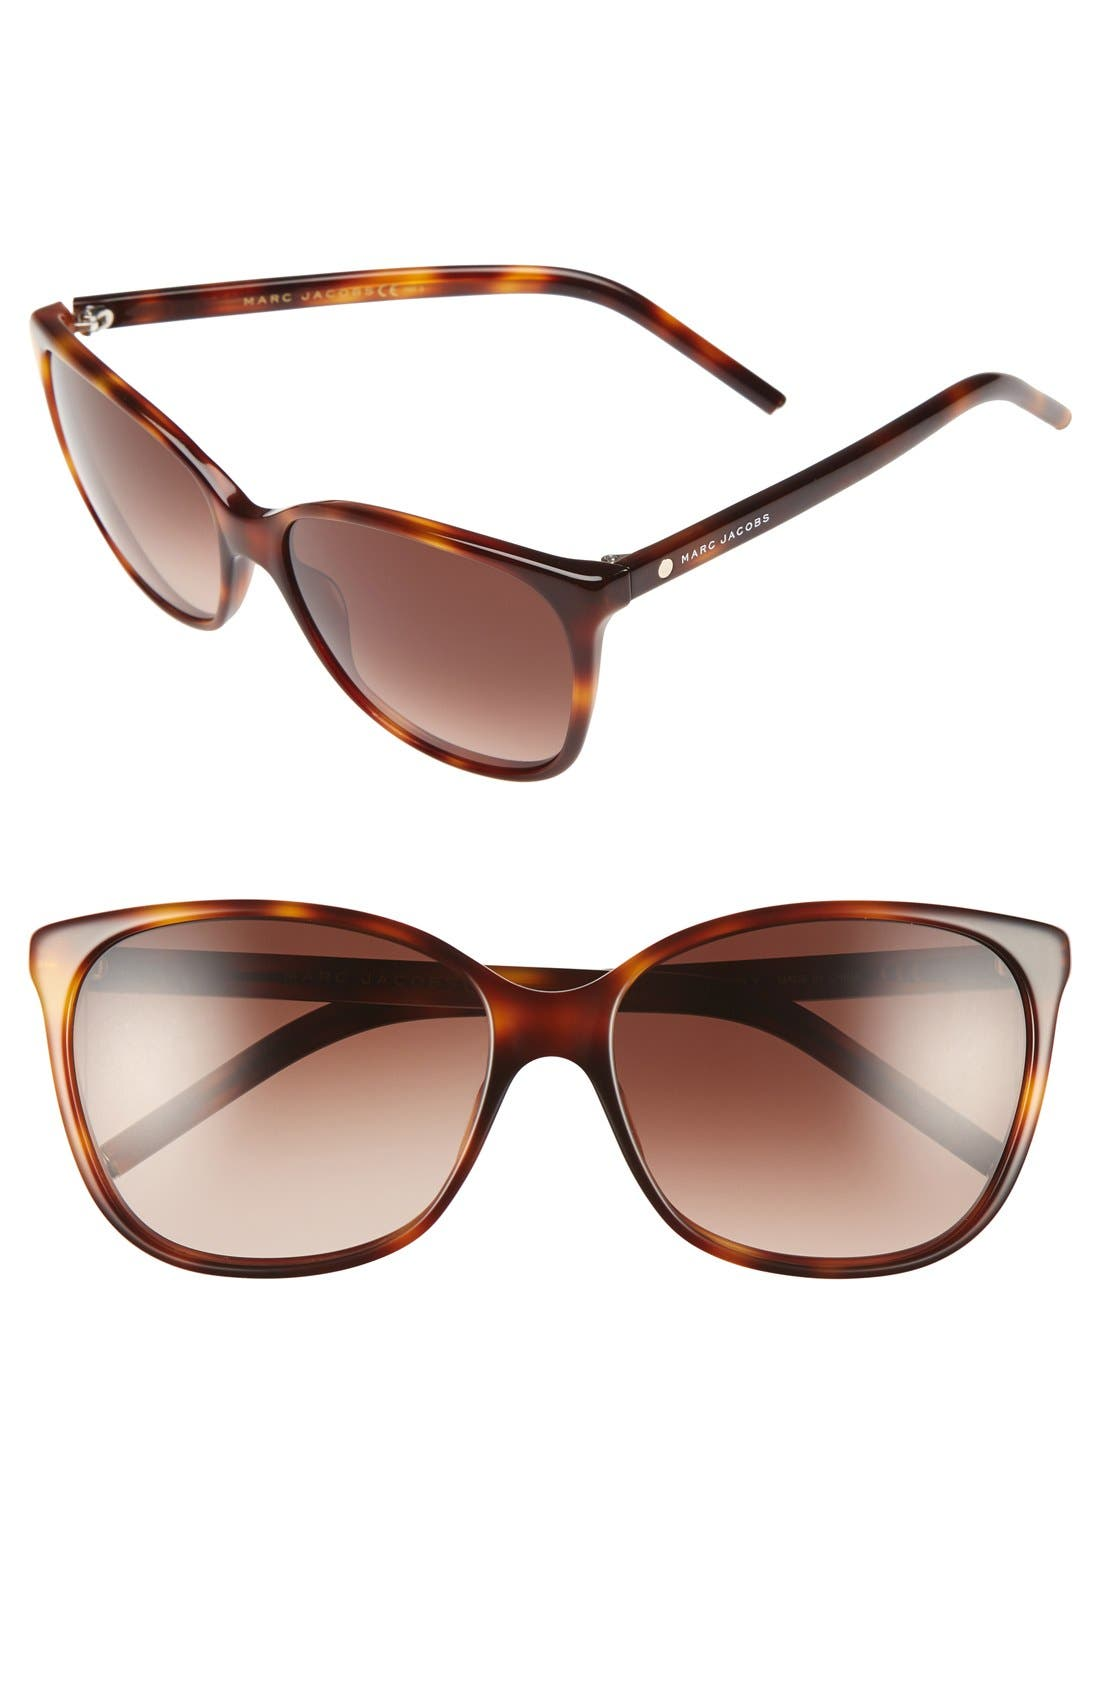 57mm Oversized Sunglasses,                             Main thumbnail 1, color,                             Havana